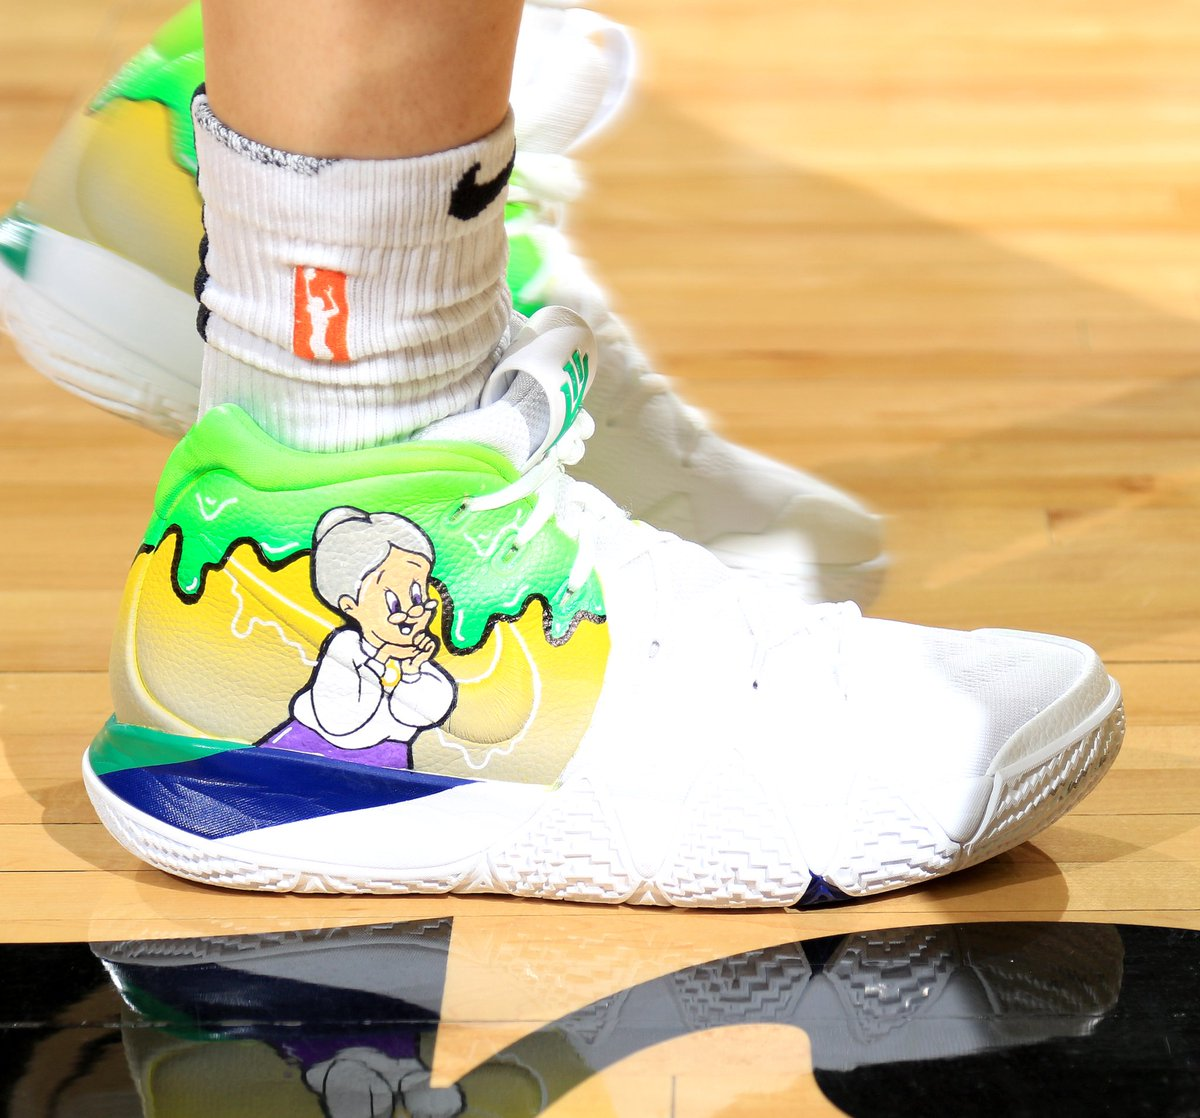 timeless design c3bdd 30903 SoleWatch wearing Granny Nike Kyrie customs Game WNBA Finals ...